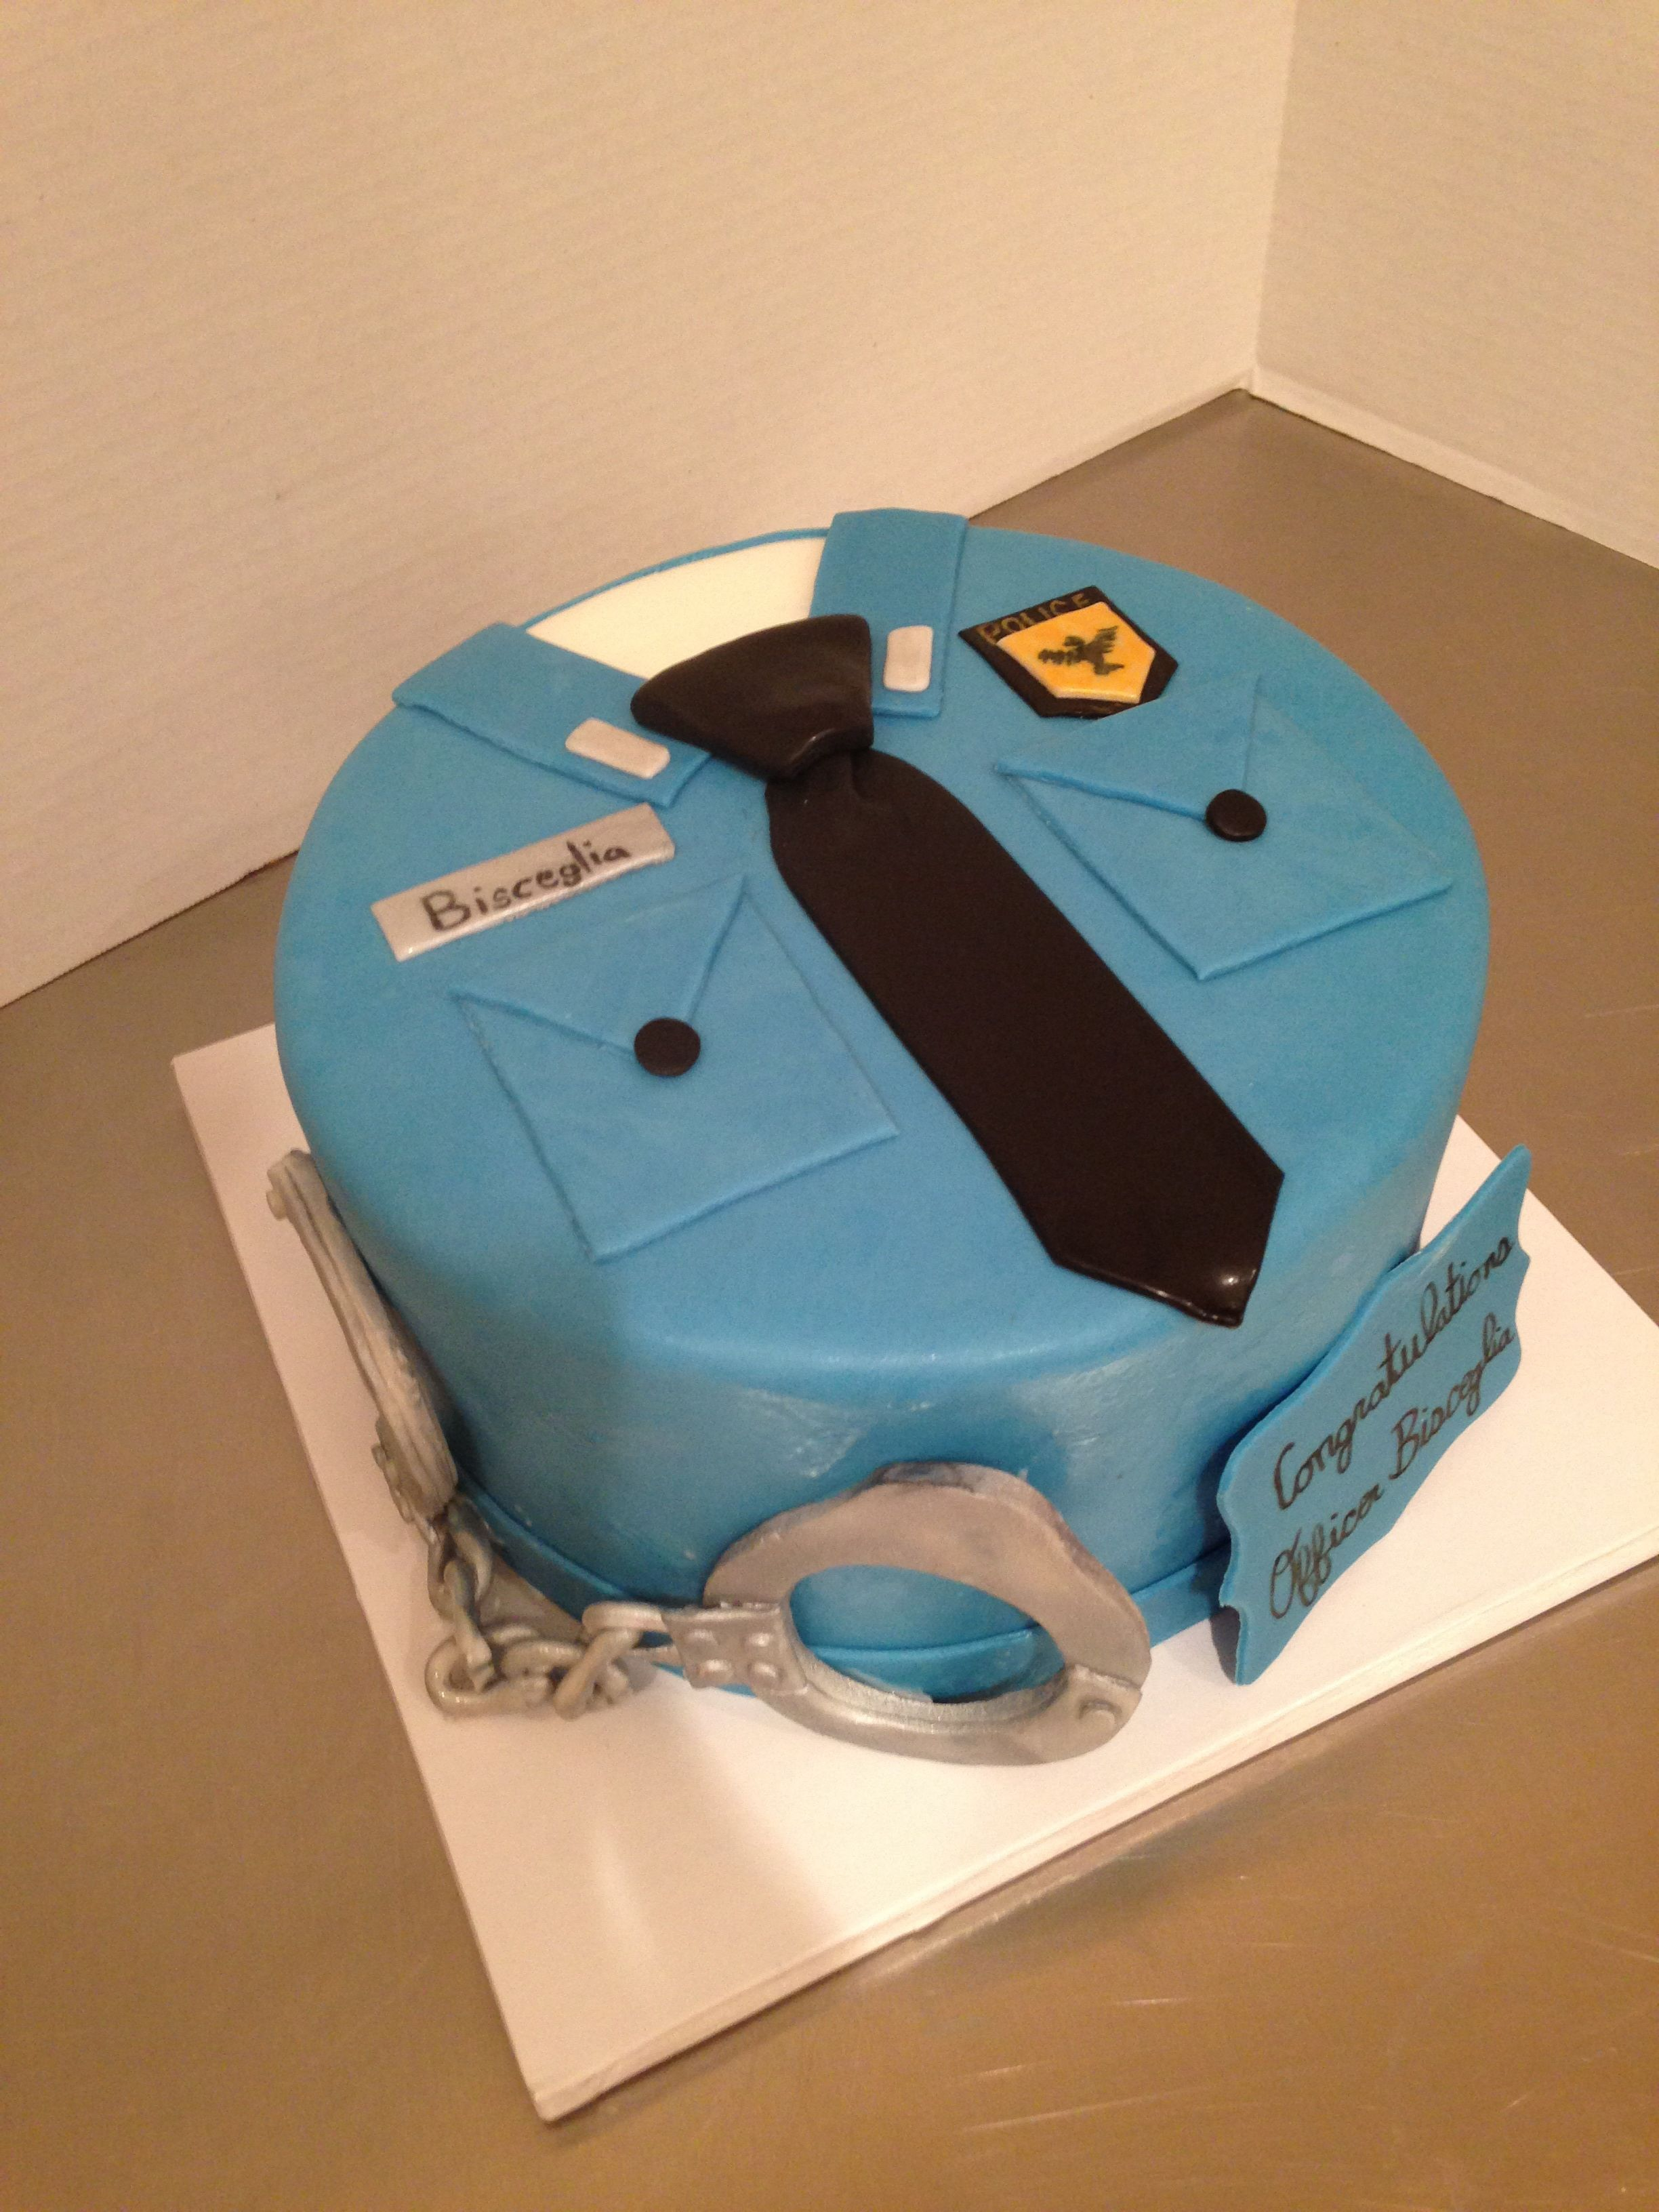 Superb Police Officer Uniform Cake With Images Police Cakes Funny Birthday Cards Online Necthendildamsfinfo